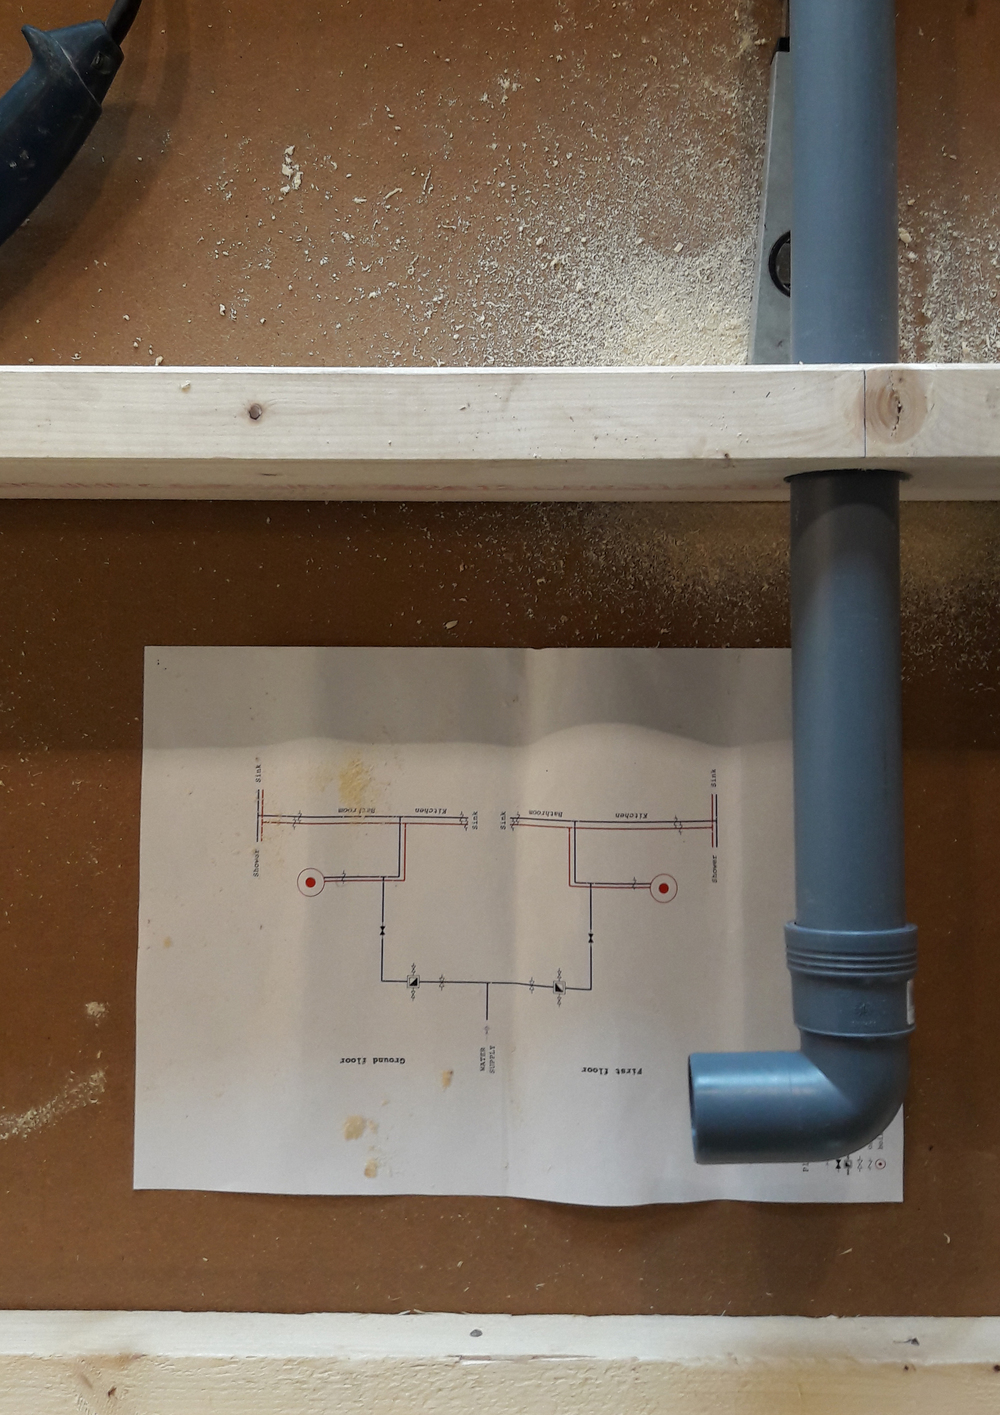 Plumbing and drawing.jpg